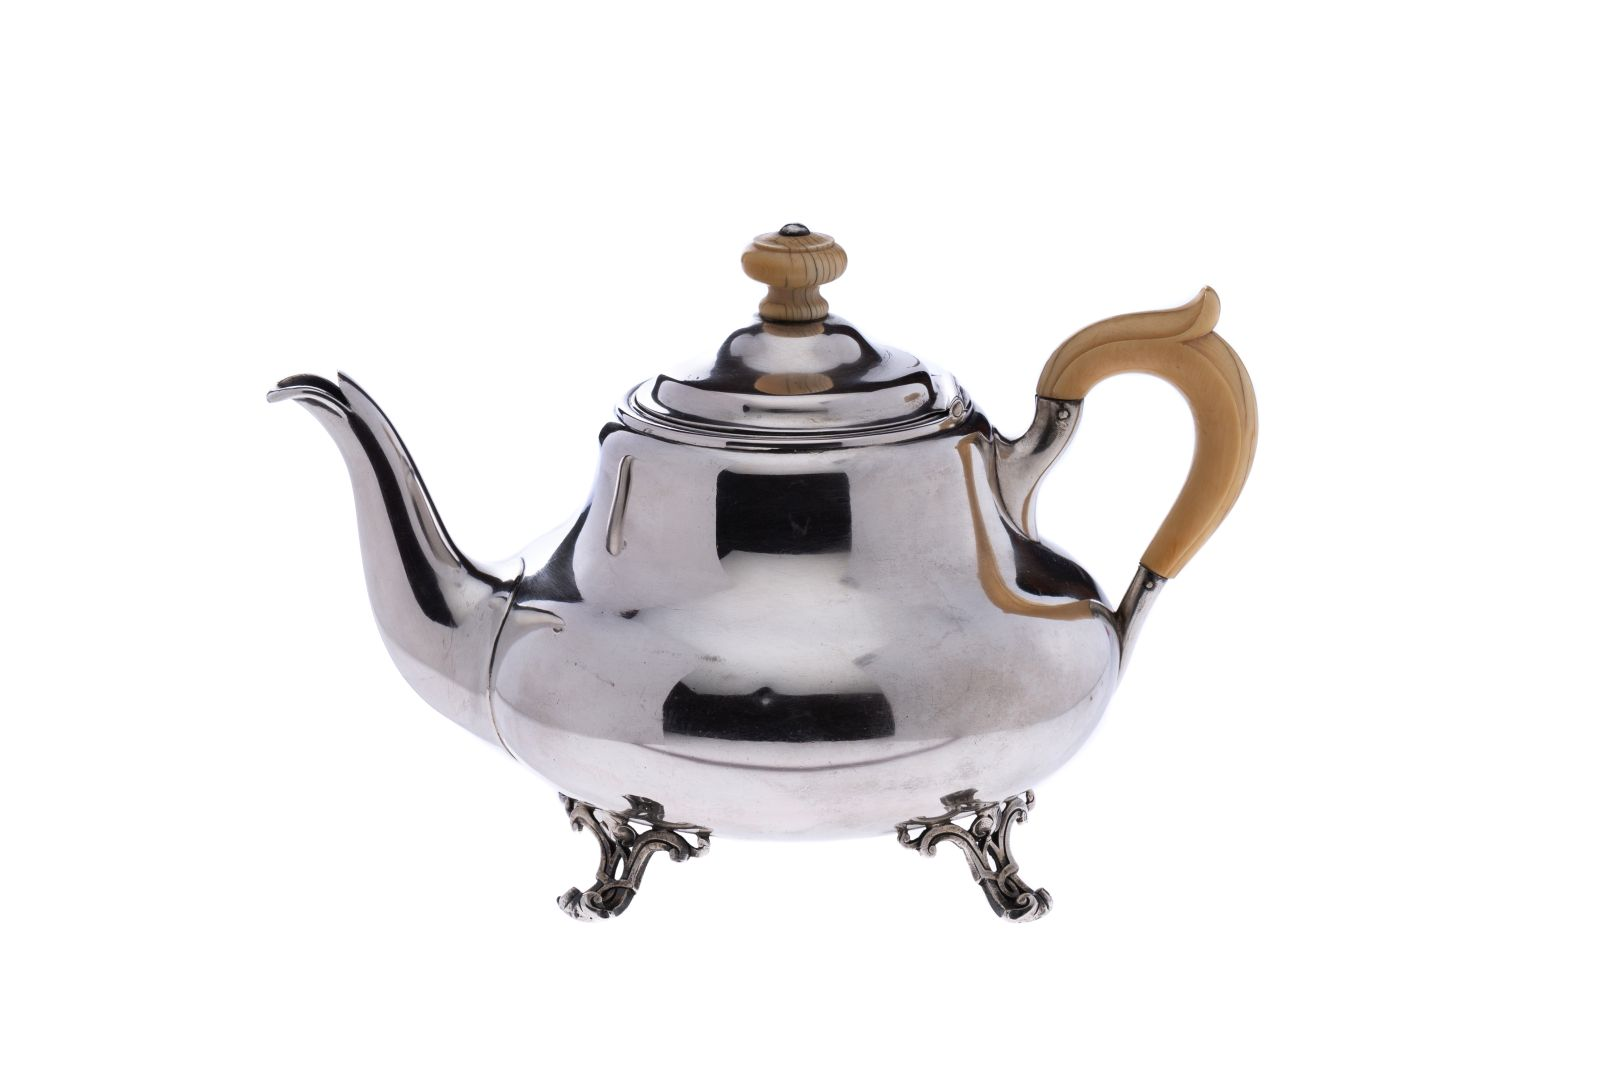 #65 Teapot with wooden handle + wooden handle | Teekanne mit Holzgriff + Holzhenkel Image